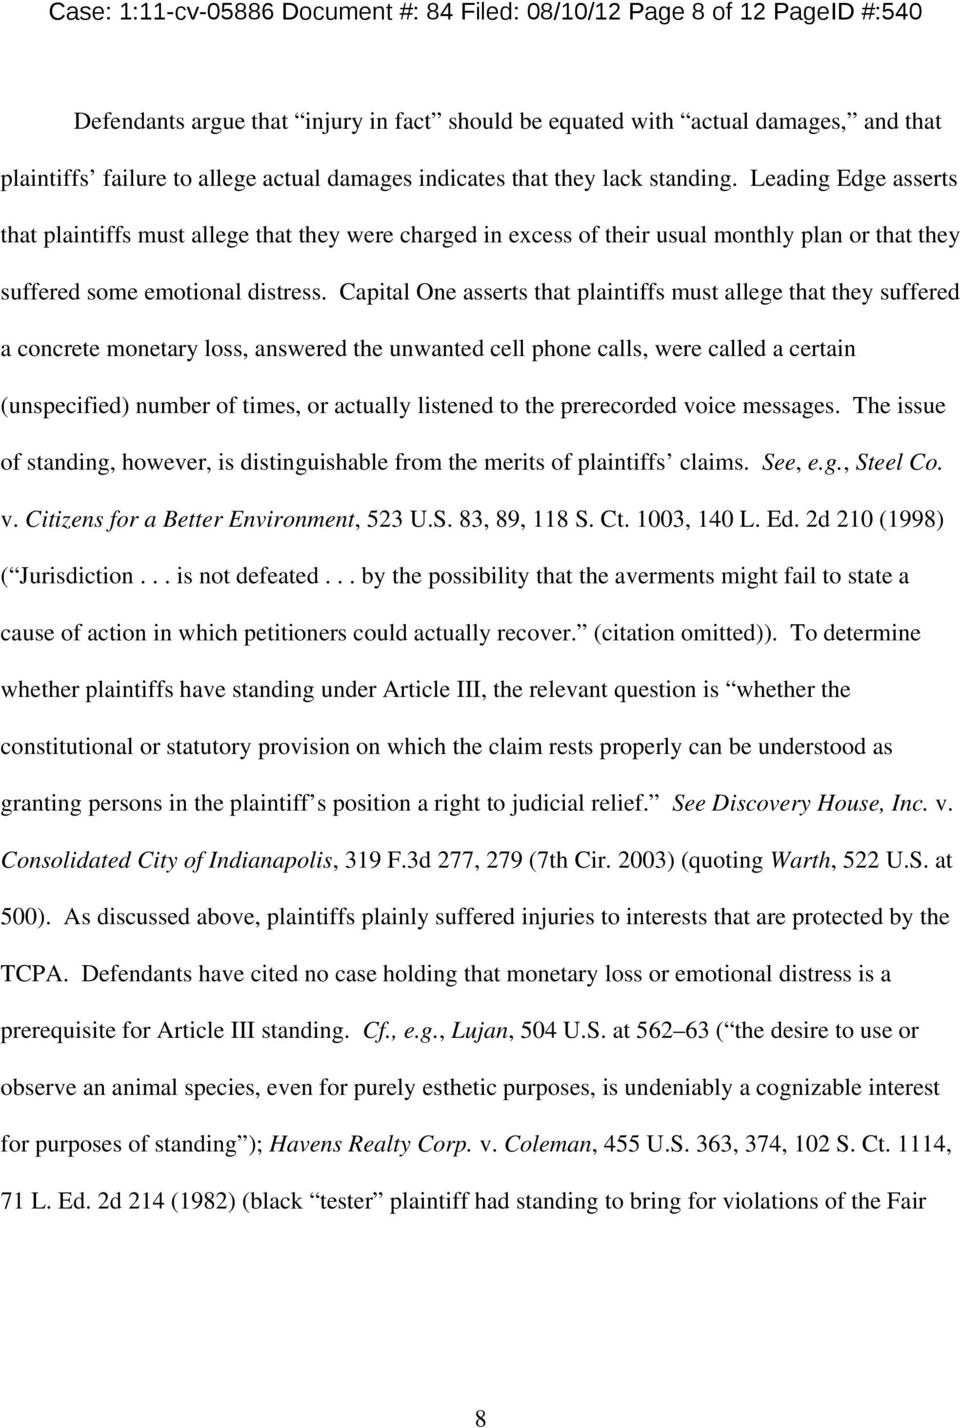 Capital One asserts that plaintiffs must allege that they suffered a concrete monetary loss, answered the unwanted cell phone calls, were called a certain (unspecified) number of times, or actually